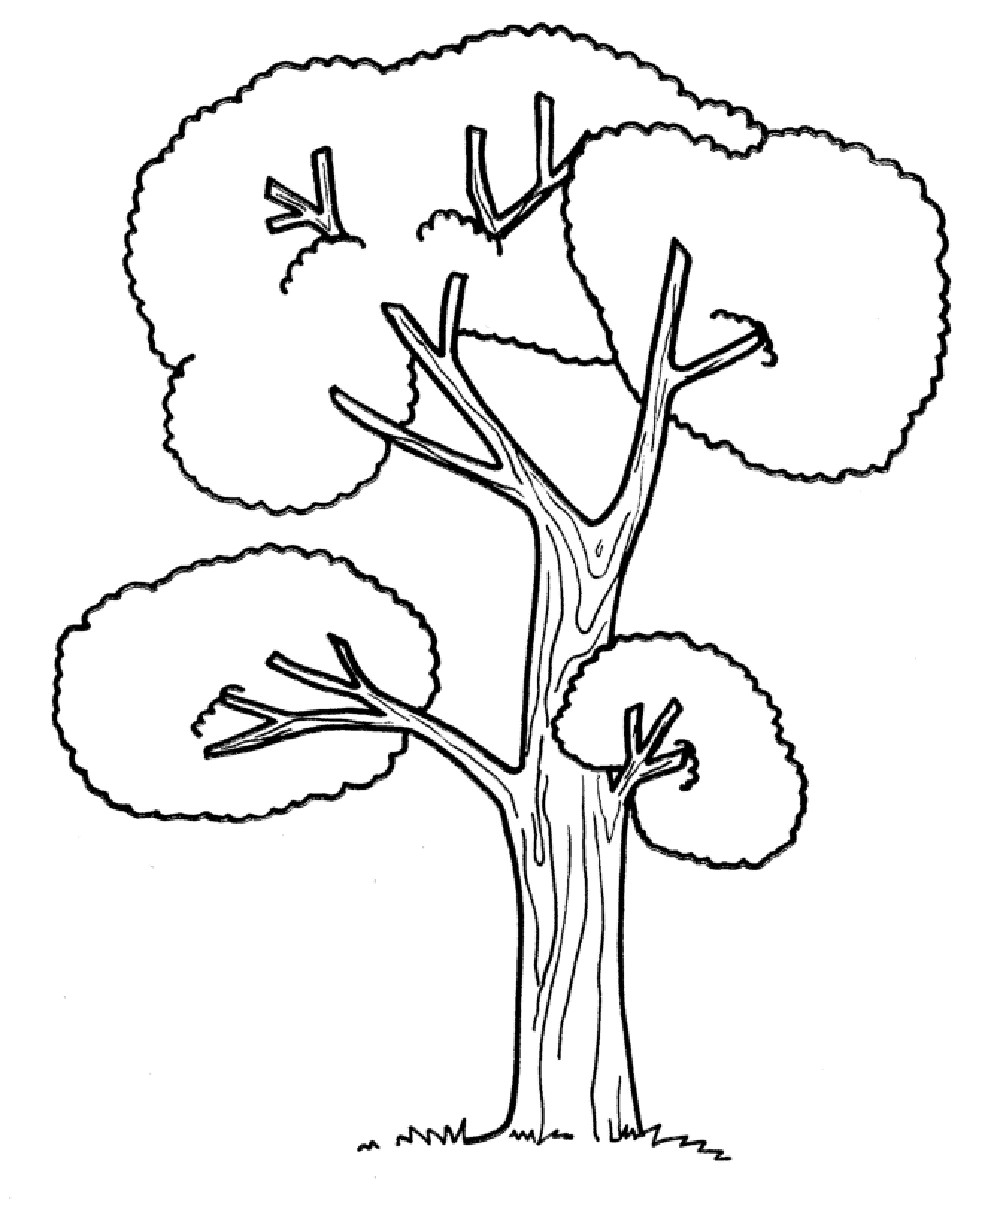 Preschool Coloring Pages Trees Copy Tall Tree Trees Coloring Pages Download Of Noted Coloring Picture A Tree Pages Unknown Resolutions Printable